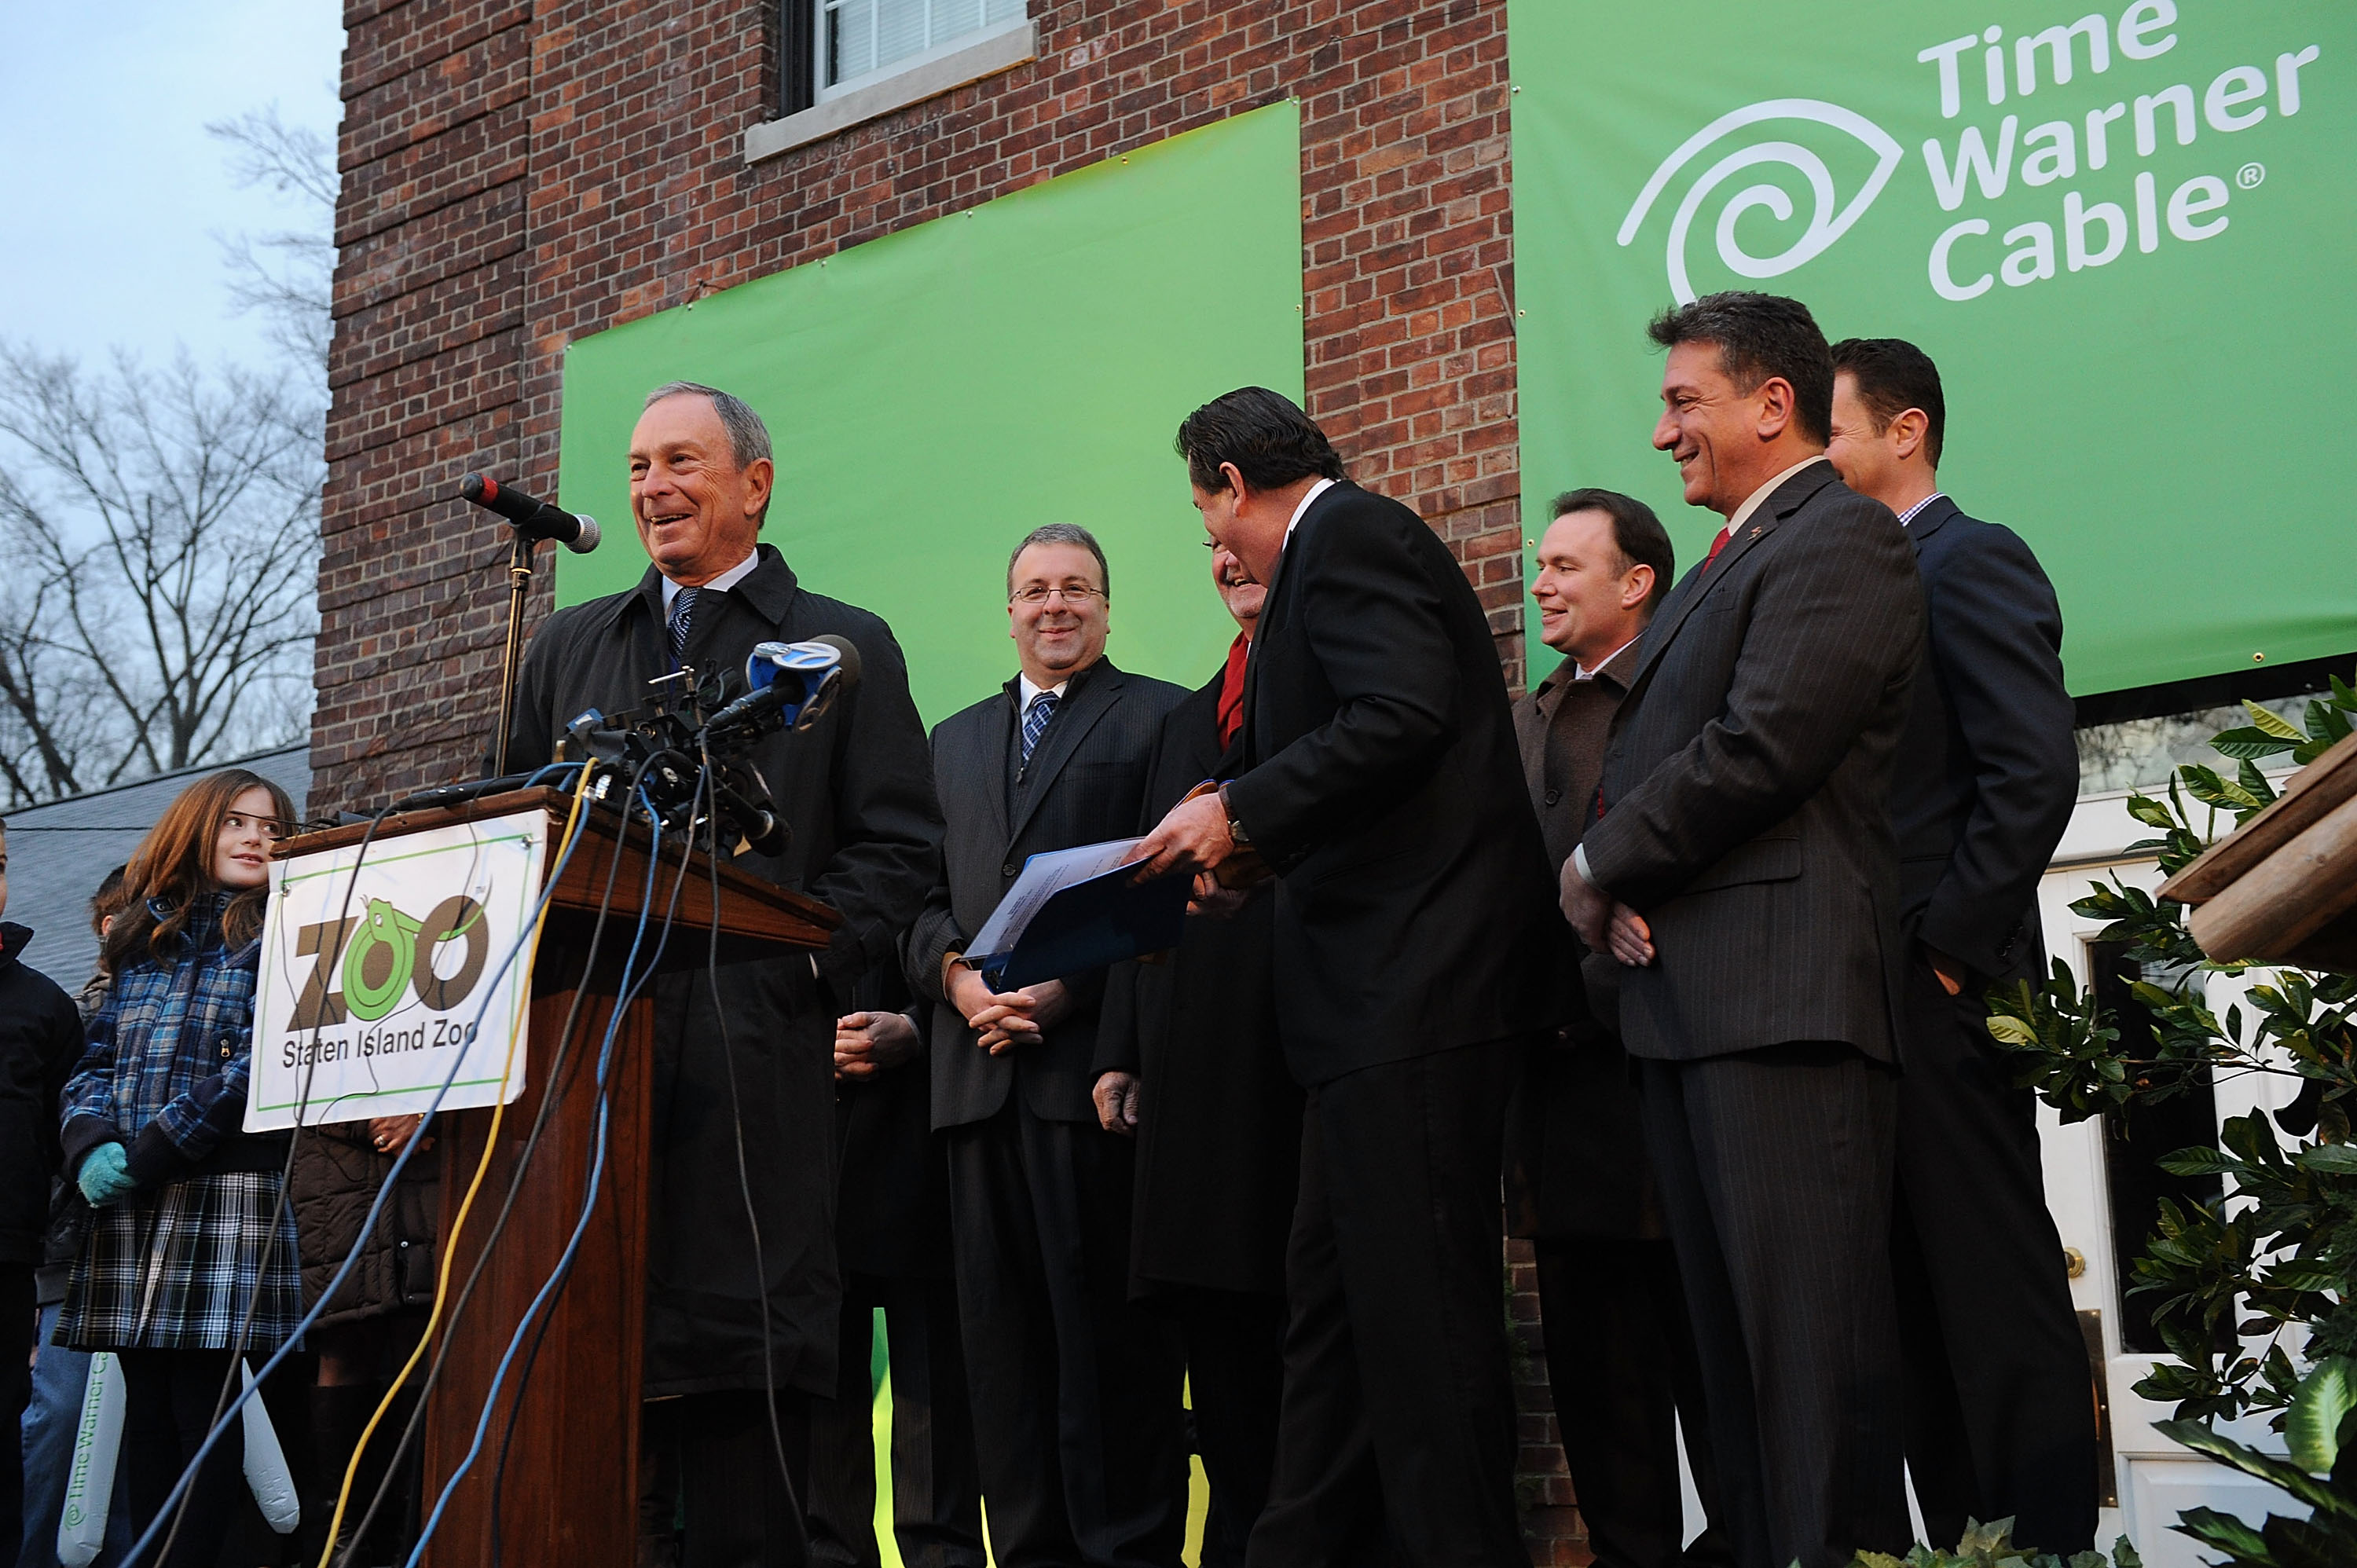 Mayor Michael Bloomberg joined the festivities at the Groundhog's Day Ceremony, sponsored by Time Warner Cable, at the Staten Island Zoo where Staten Island Chuck predicted an early spring. Photo credit: Shahar Azran Photography